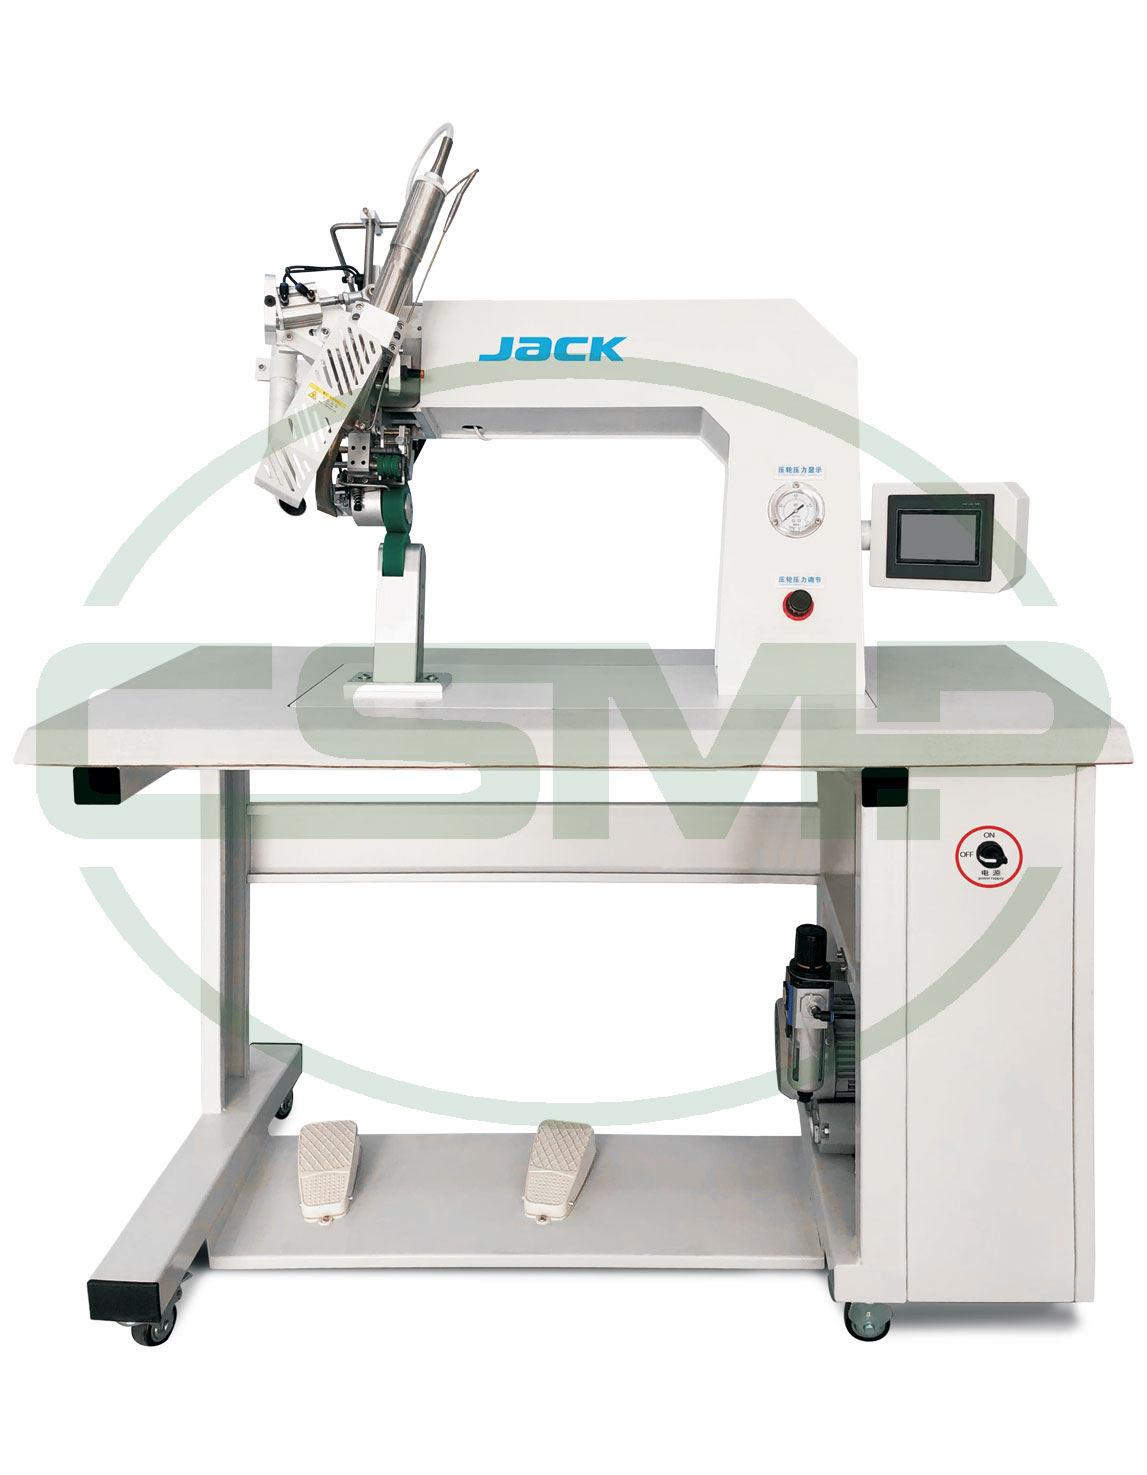 Jack Bonding, Seam Sealing Machines